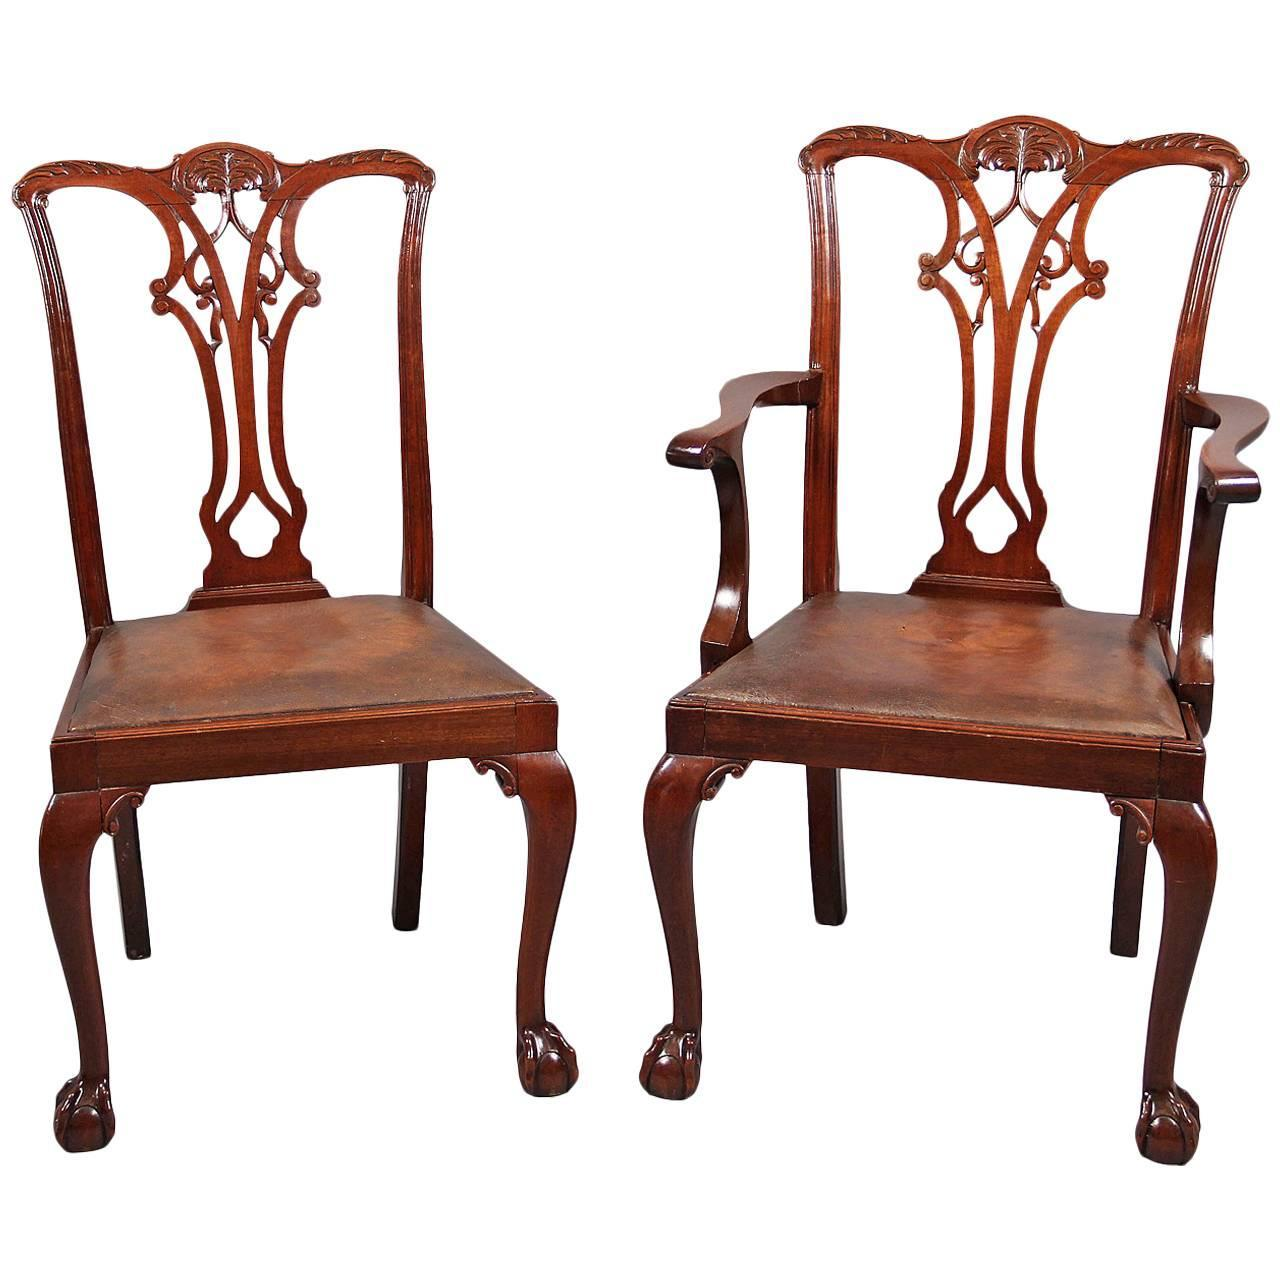 Chippendale Furniture: Set Of 12, Late 19th To Early 20th Century Chippendale